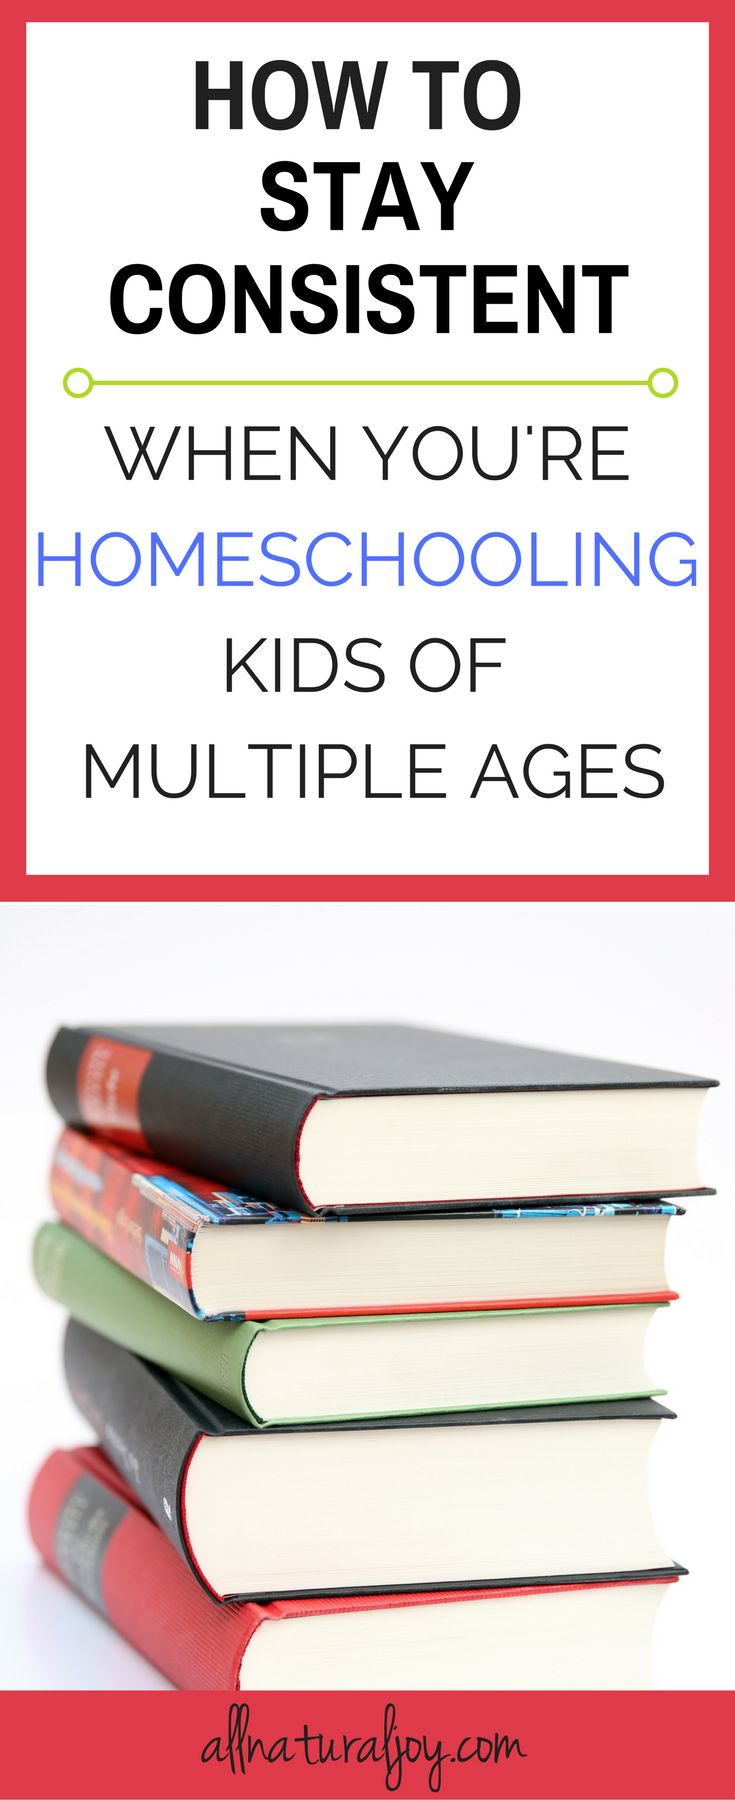 Need help staying consistent when you're homeschooling kids of multiple ages? Here are some helpful ways to keep on top of everything! via @Pinterest.com/allnaturaljoy_